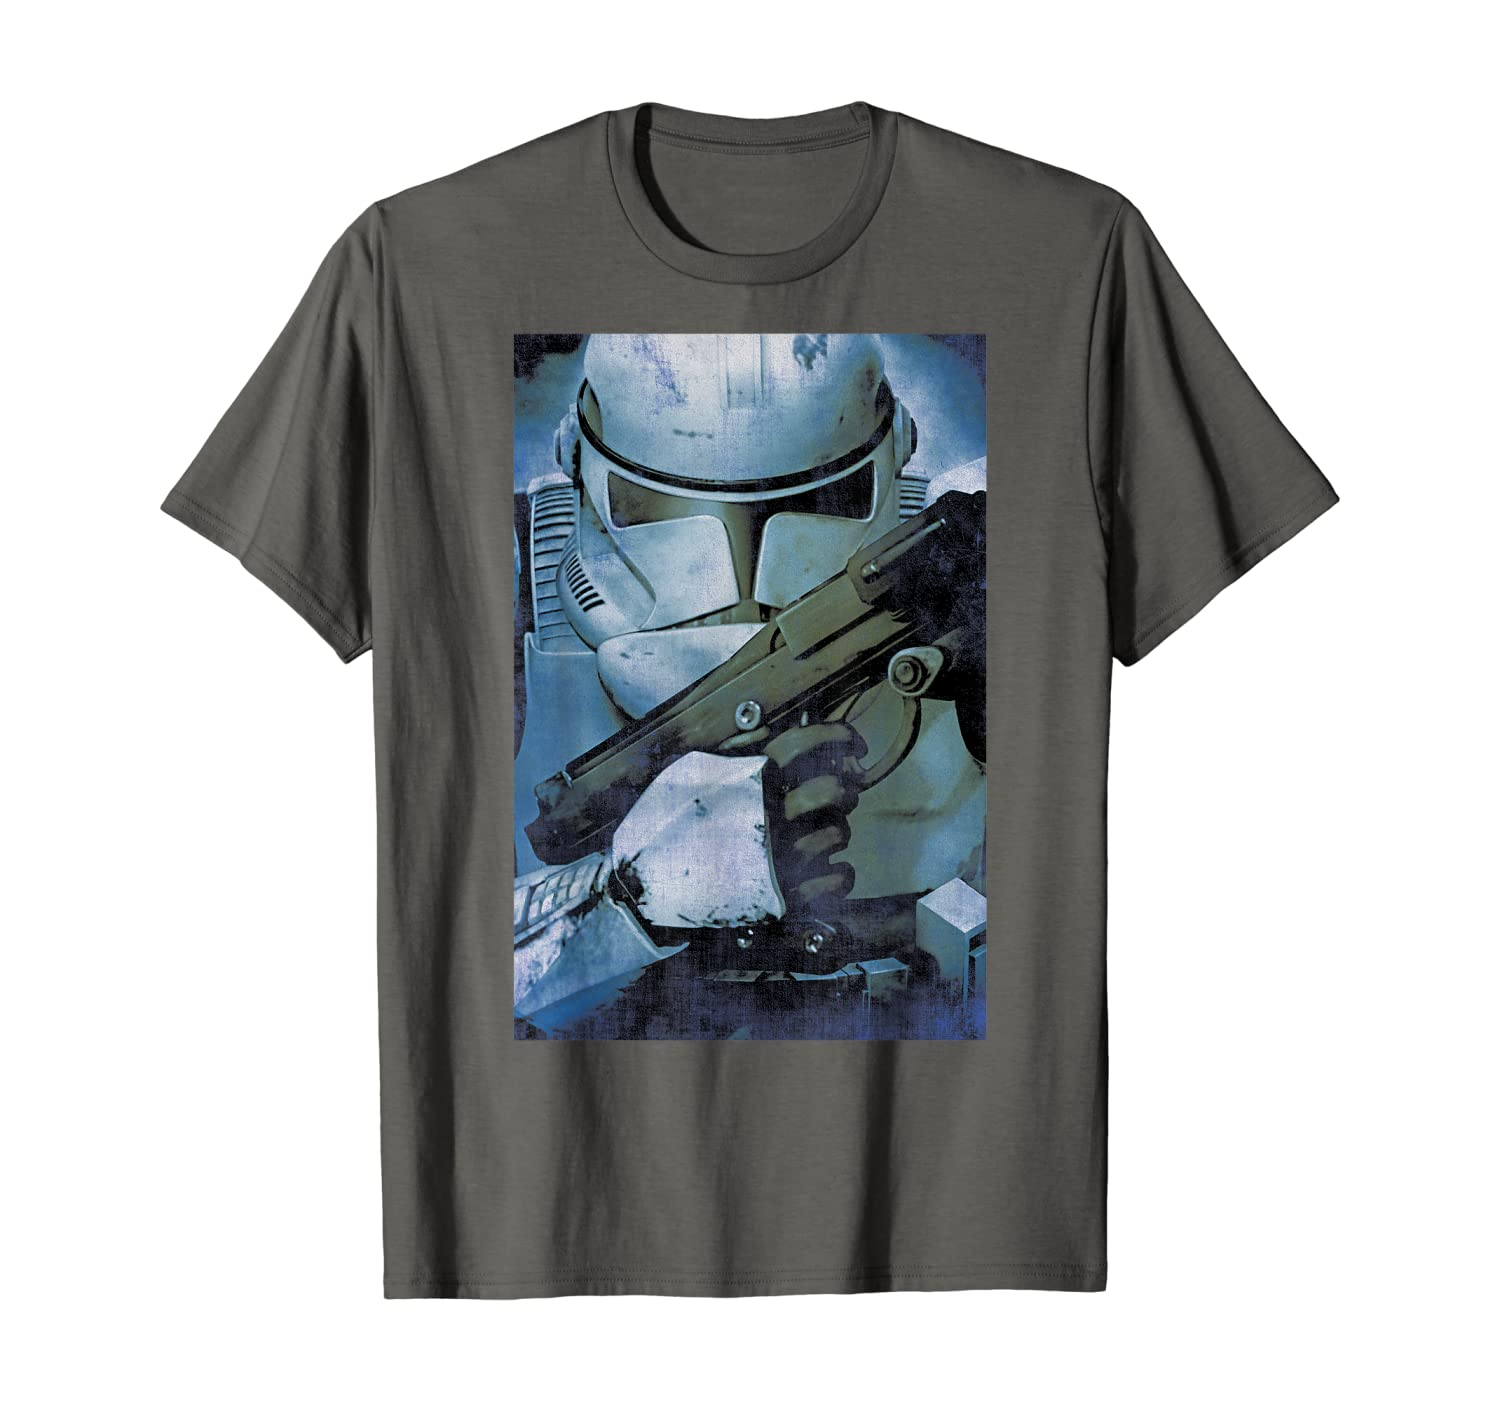 Amazon Com Star Wars Revenge Of The Sith Clone Trooper Poster T Shirt Clothing